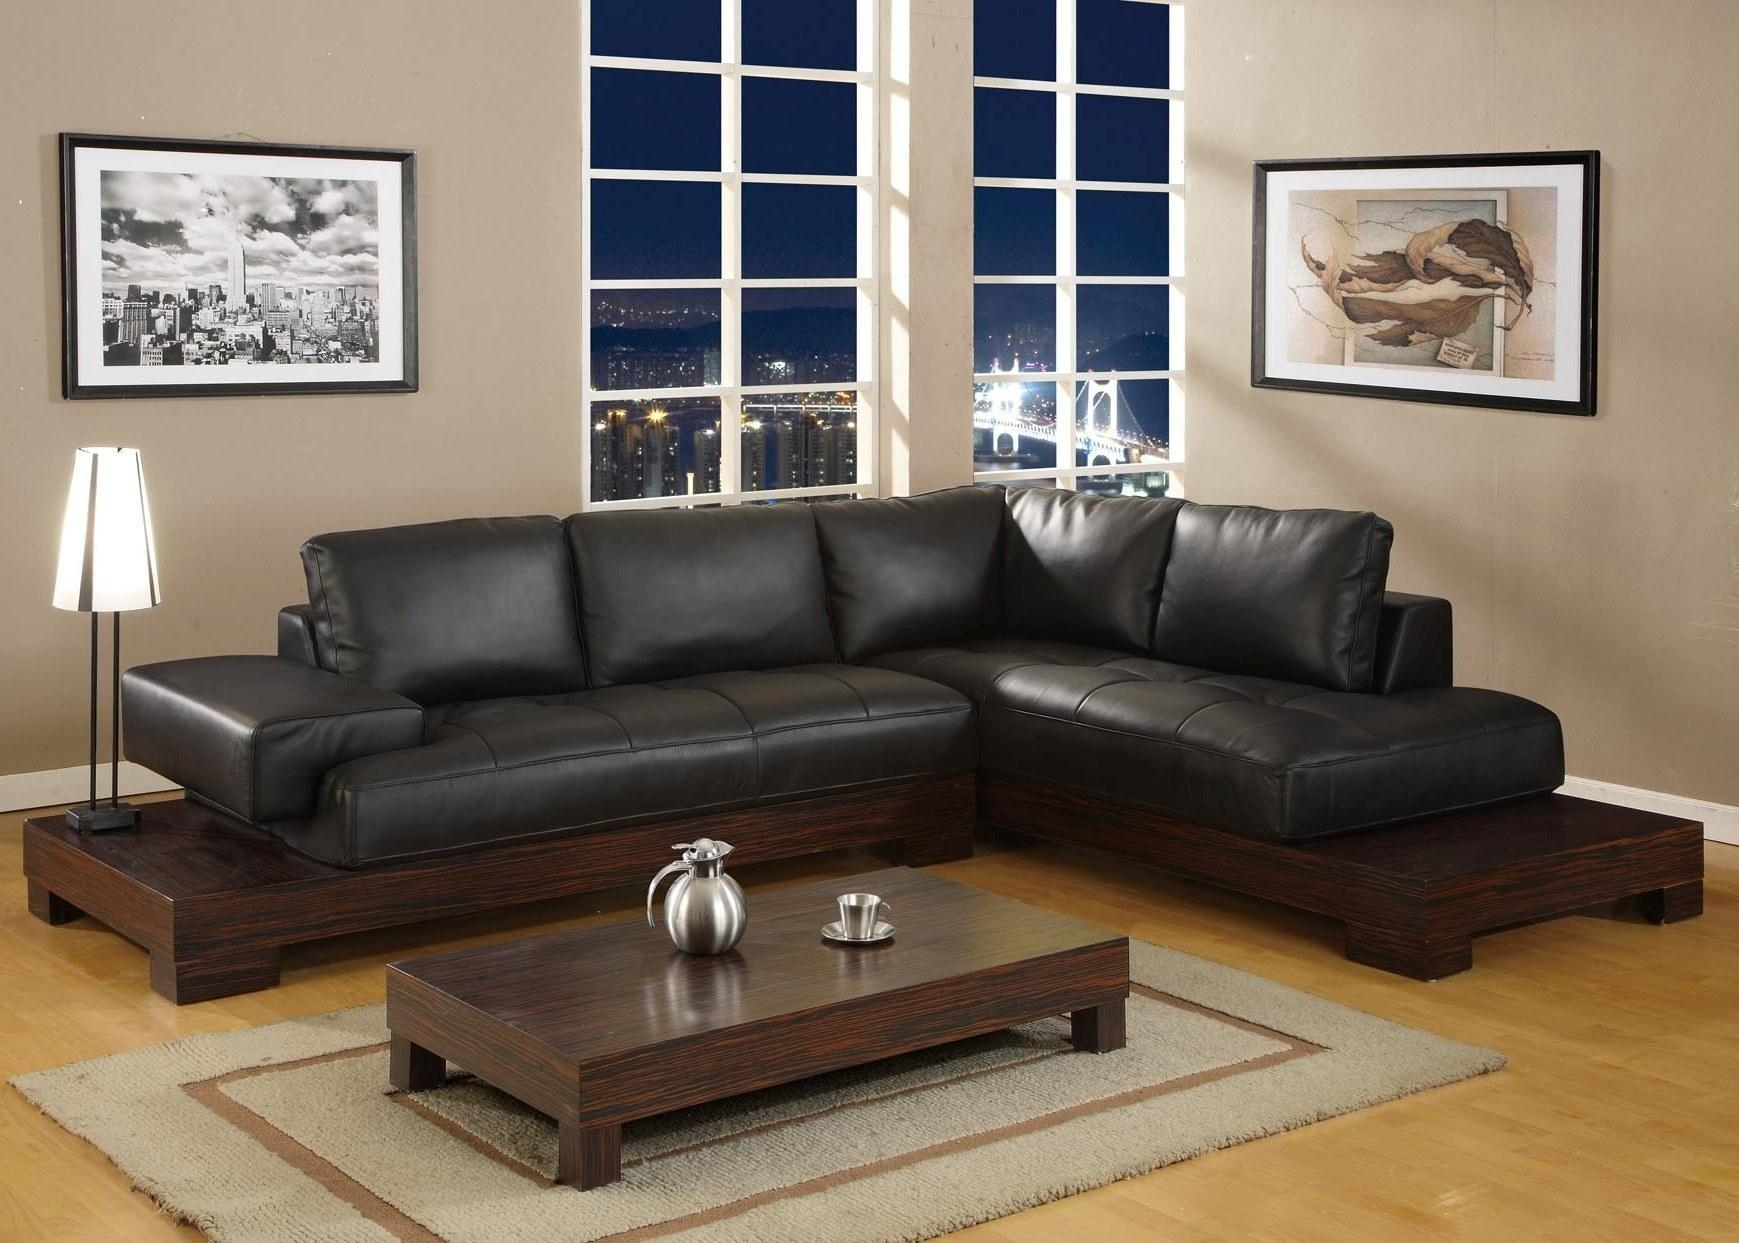 Decorating Your Home Decoration With Amazing Awesome Living Room Pertaining To Black Sofas Decors (Image 14 of 20)